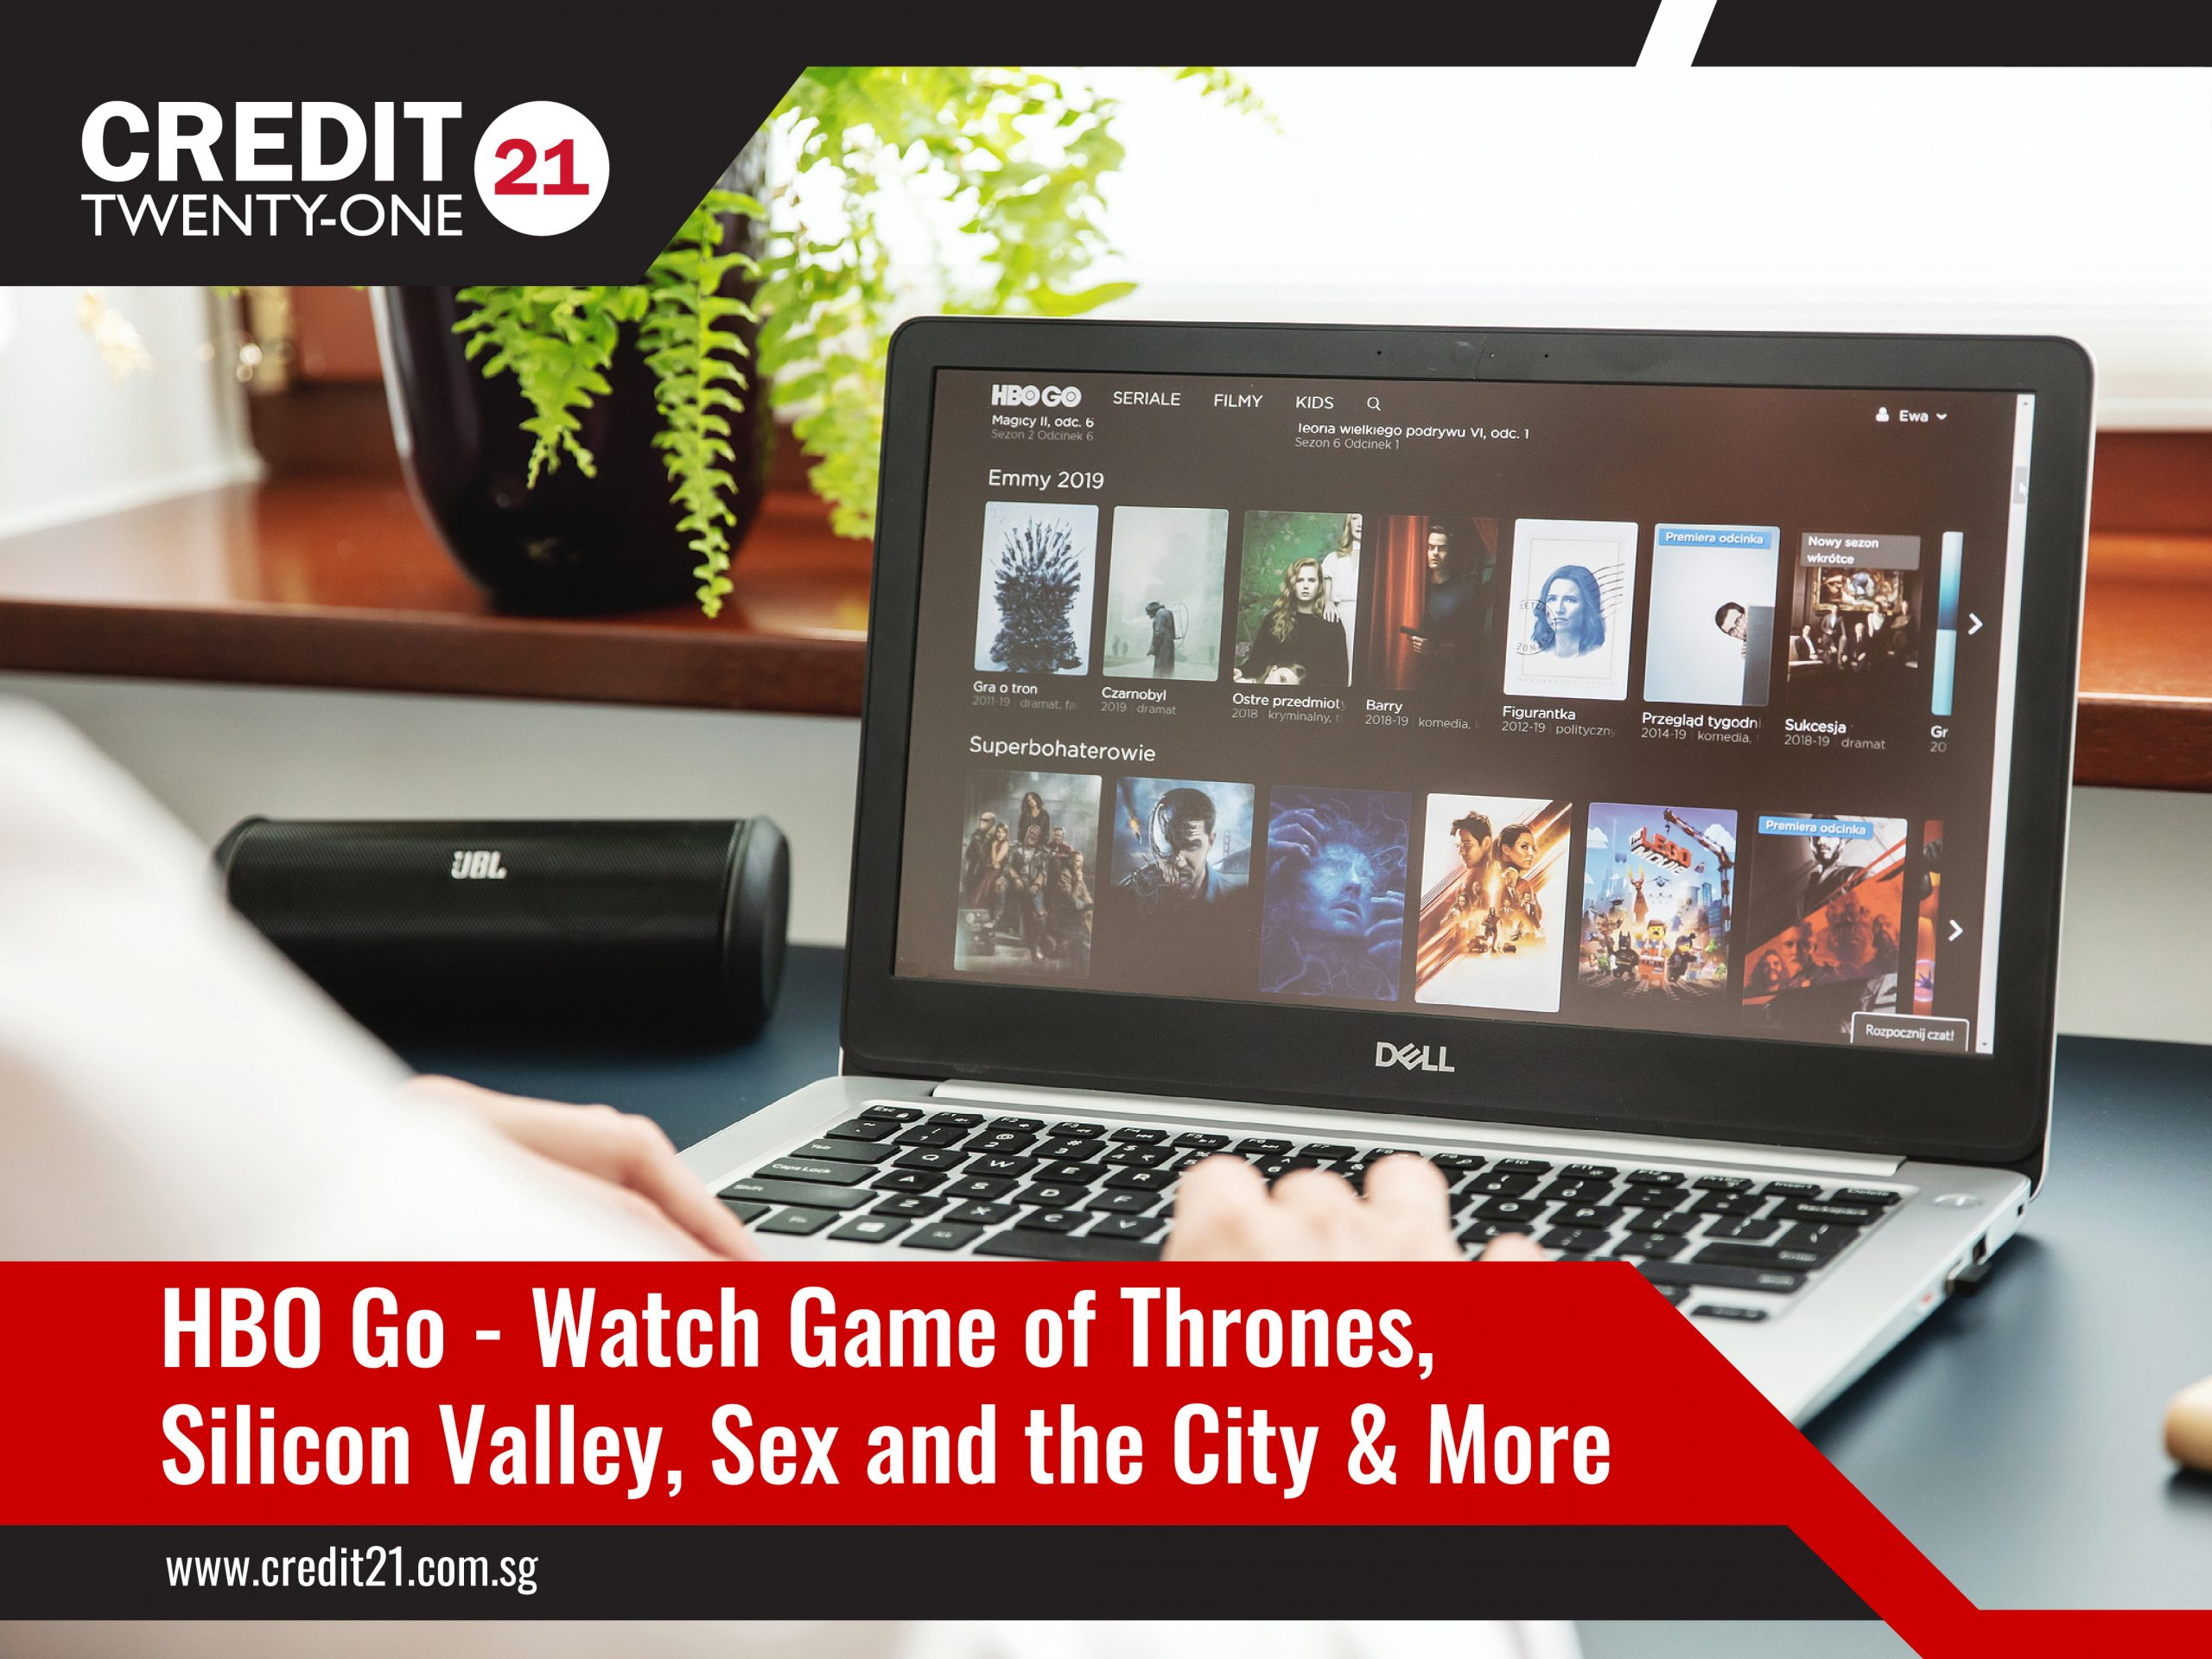 TV Streaming Services HBO Go Watch Game of Thrones, Silicon Valley, Sex and the City Credit 21 Singapore